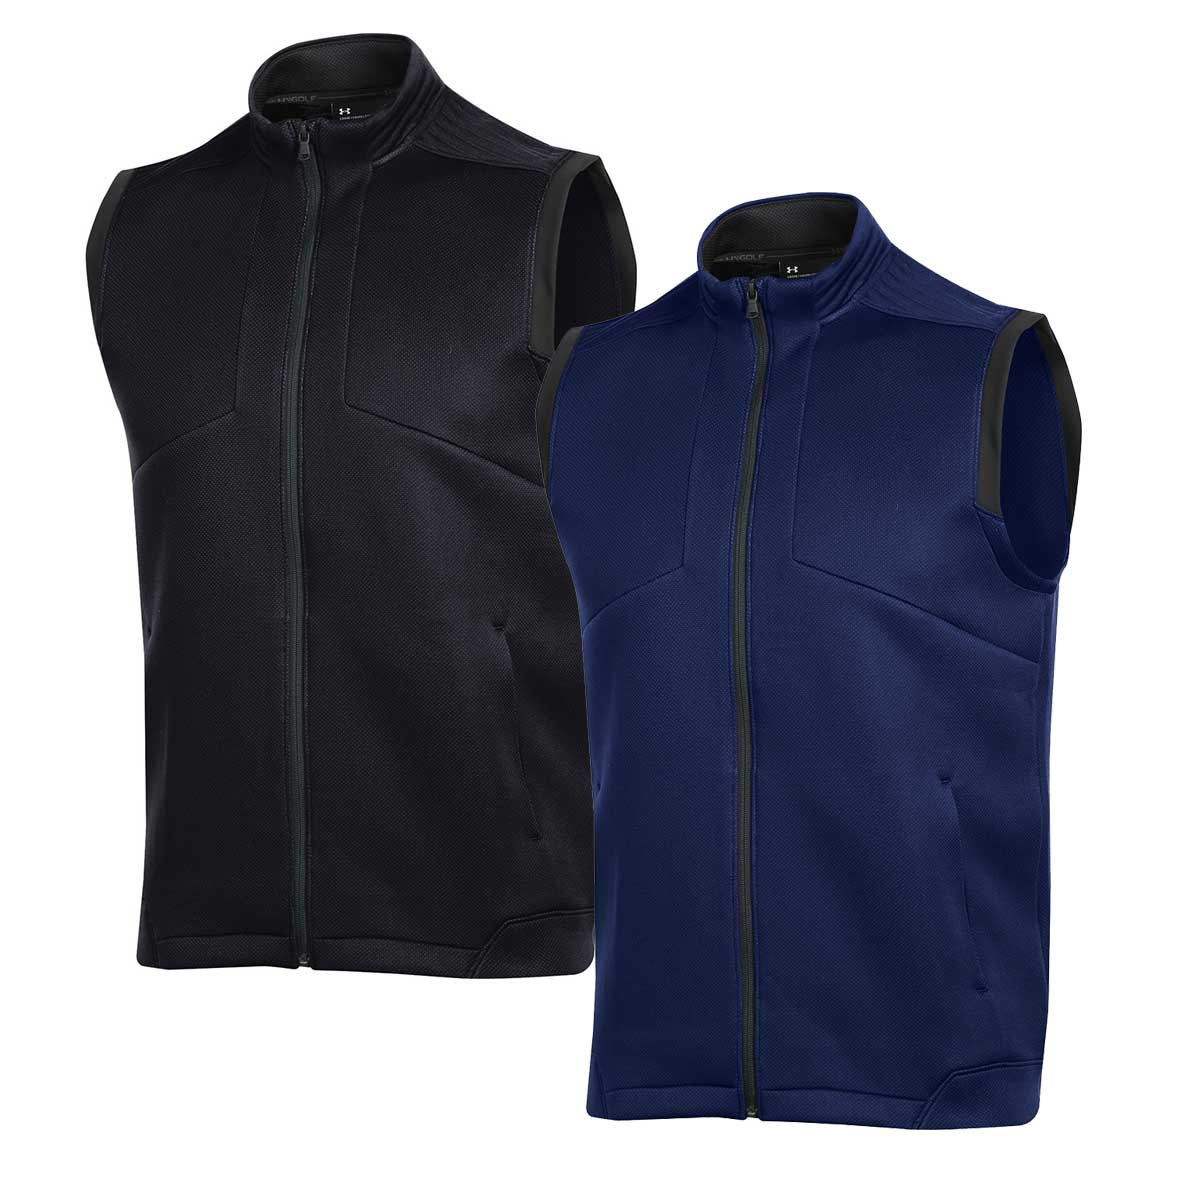 Under Armour Men's Daytona Vest